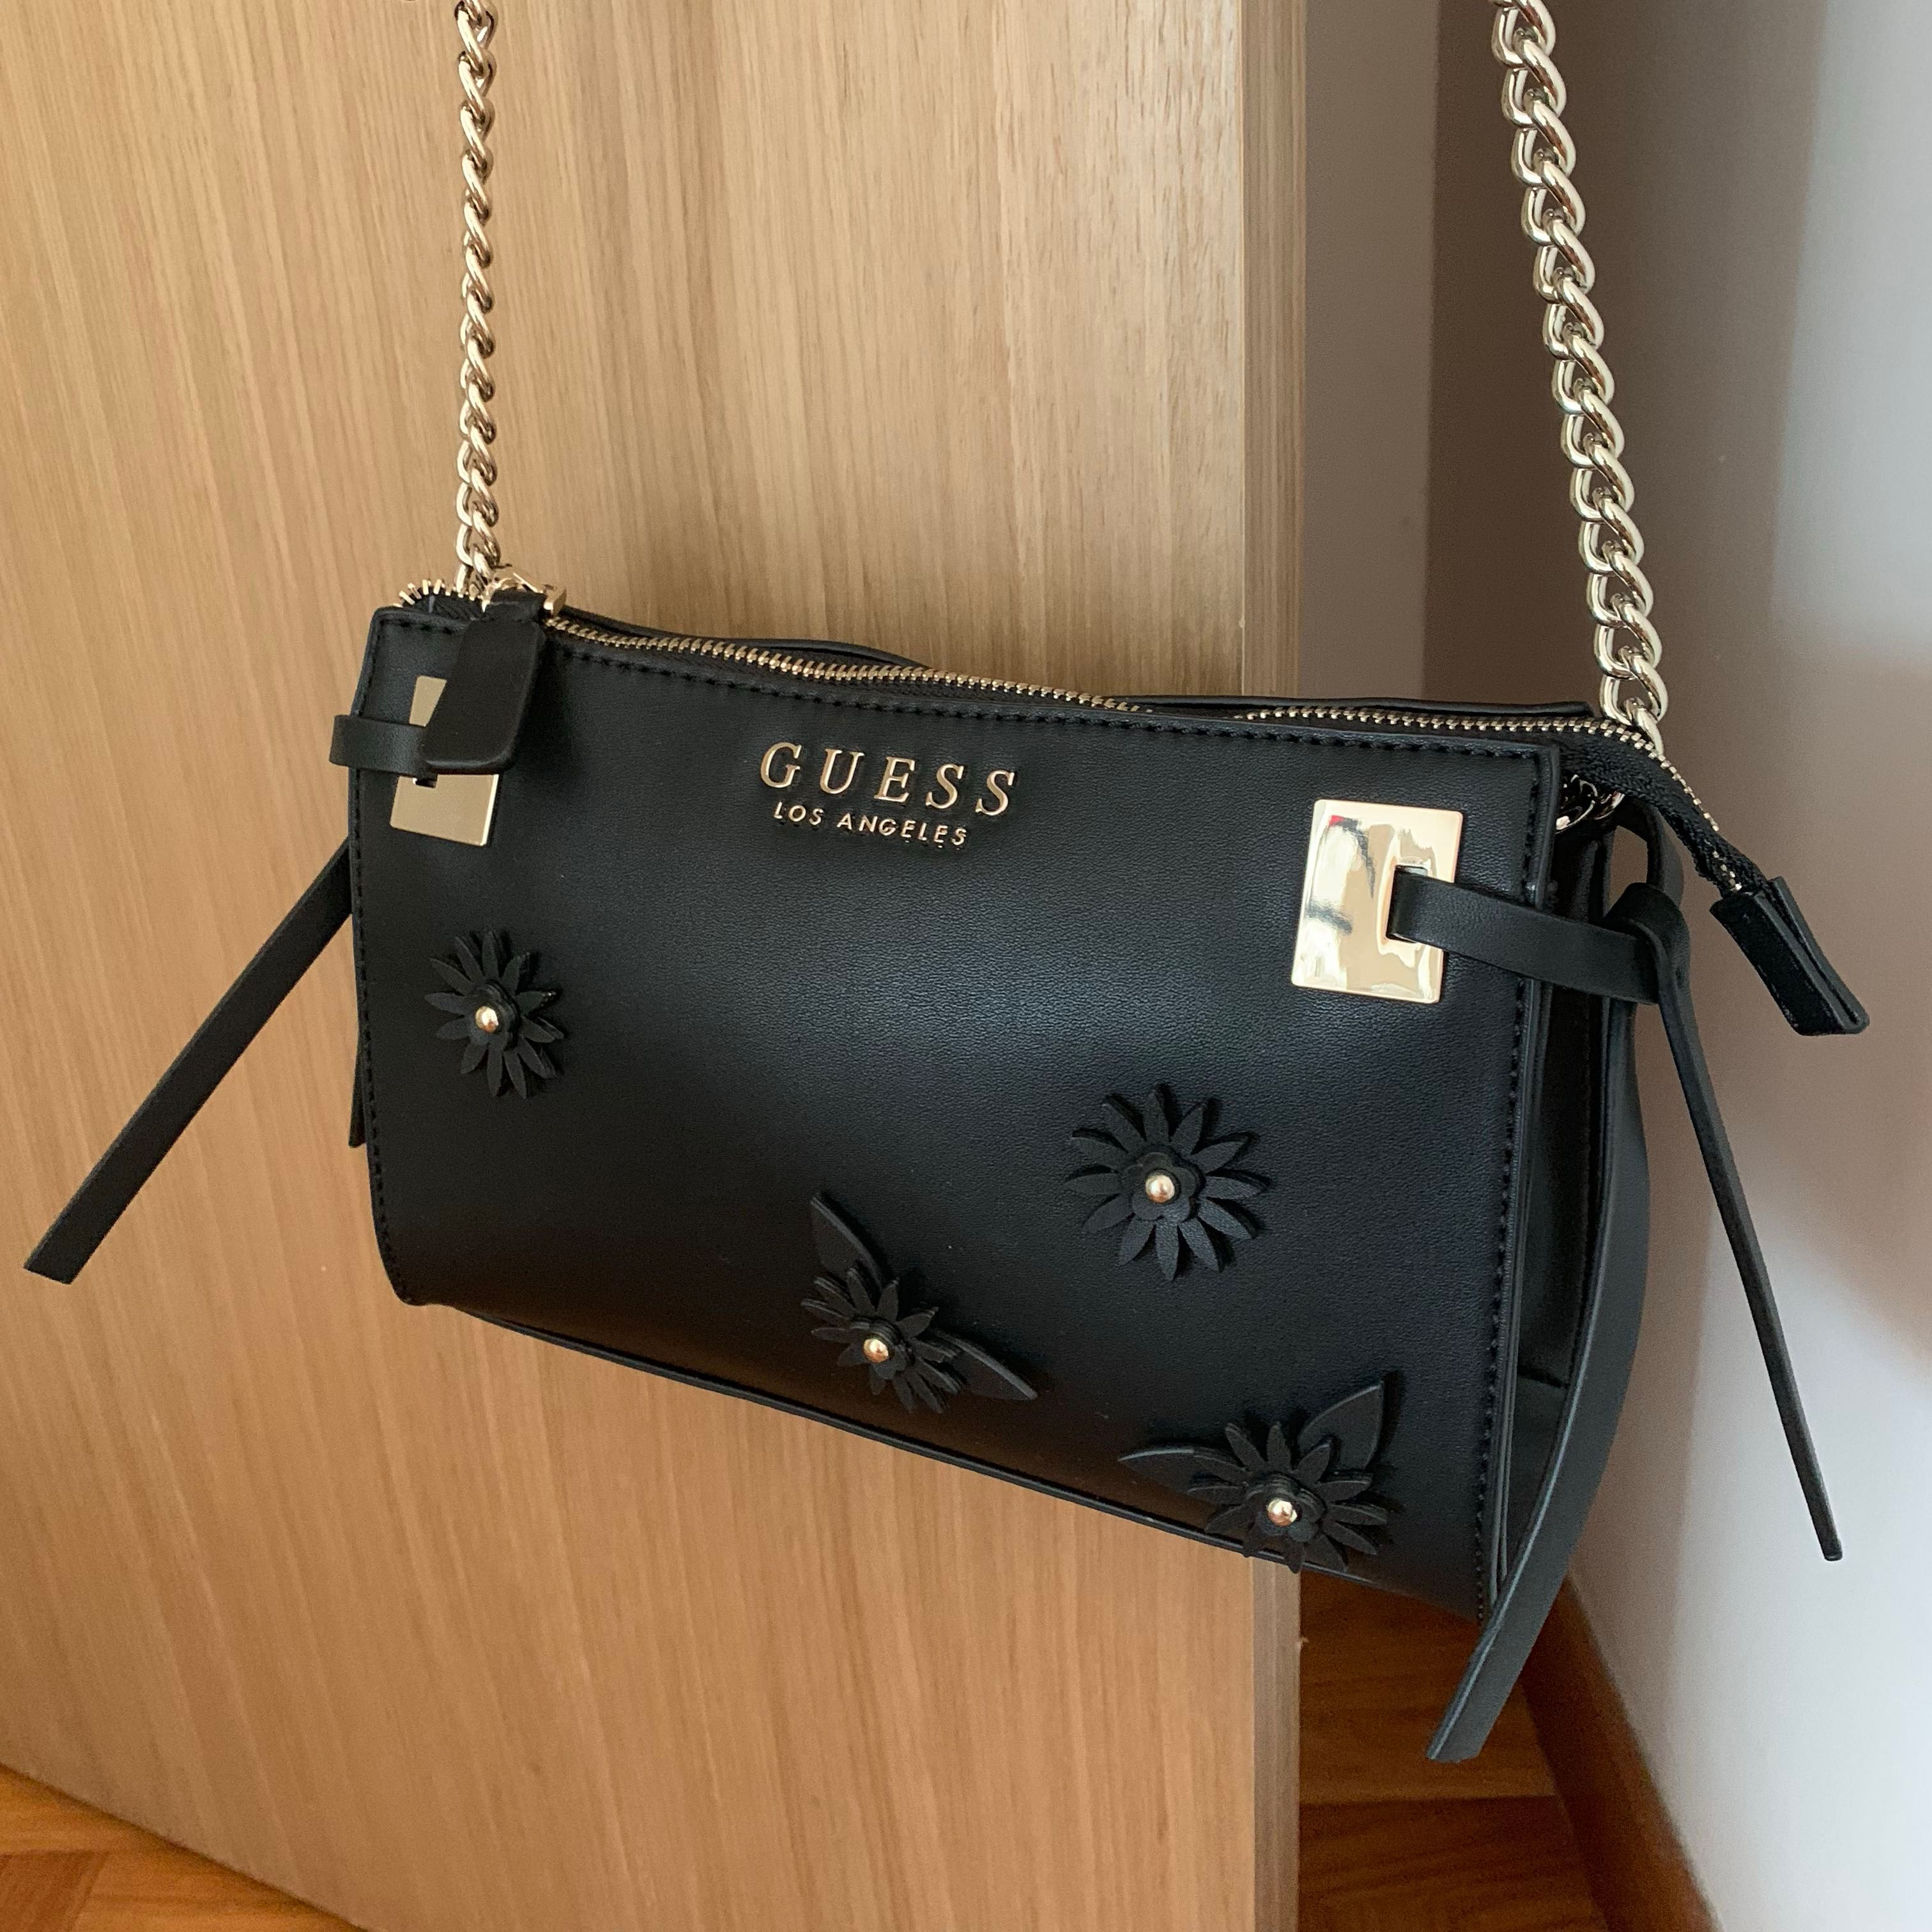 Authentic Guess Crossbody Bag 0a45abf477f55